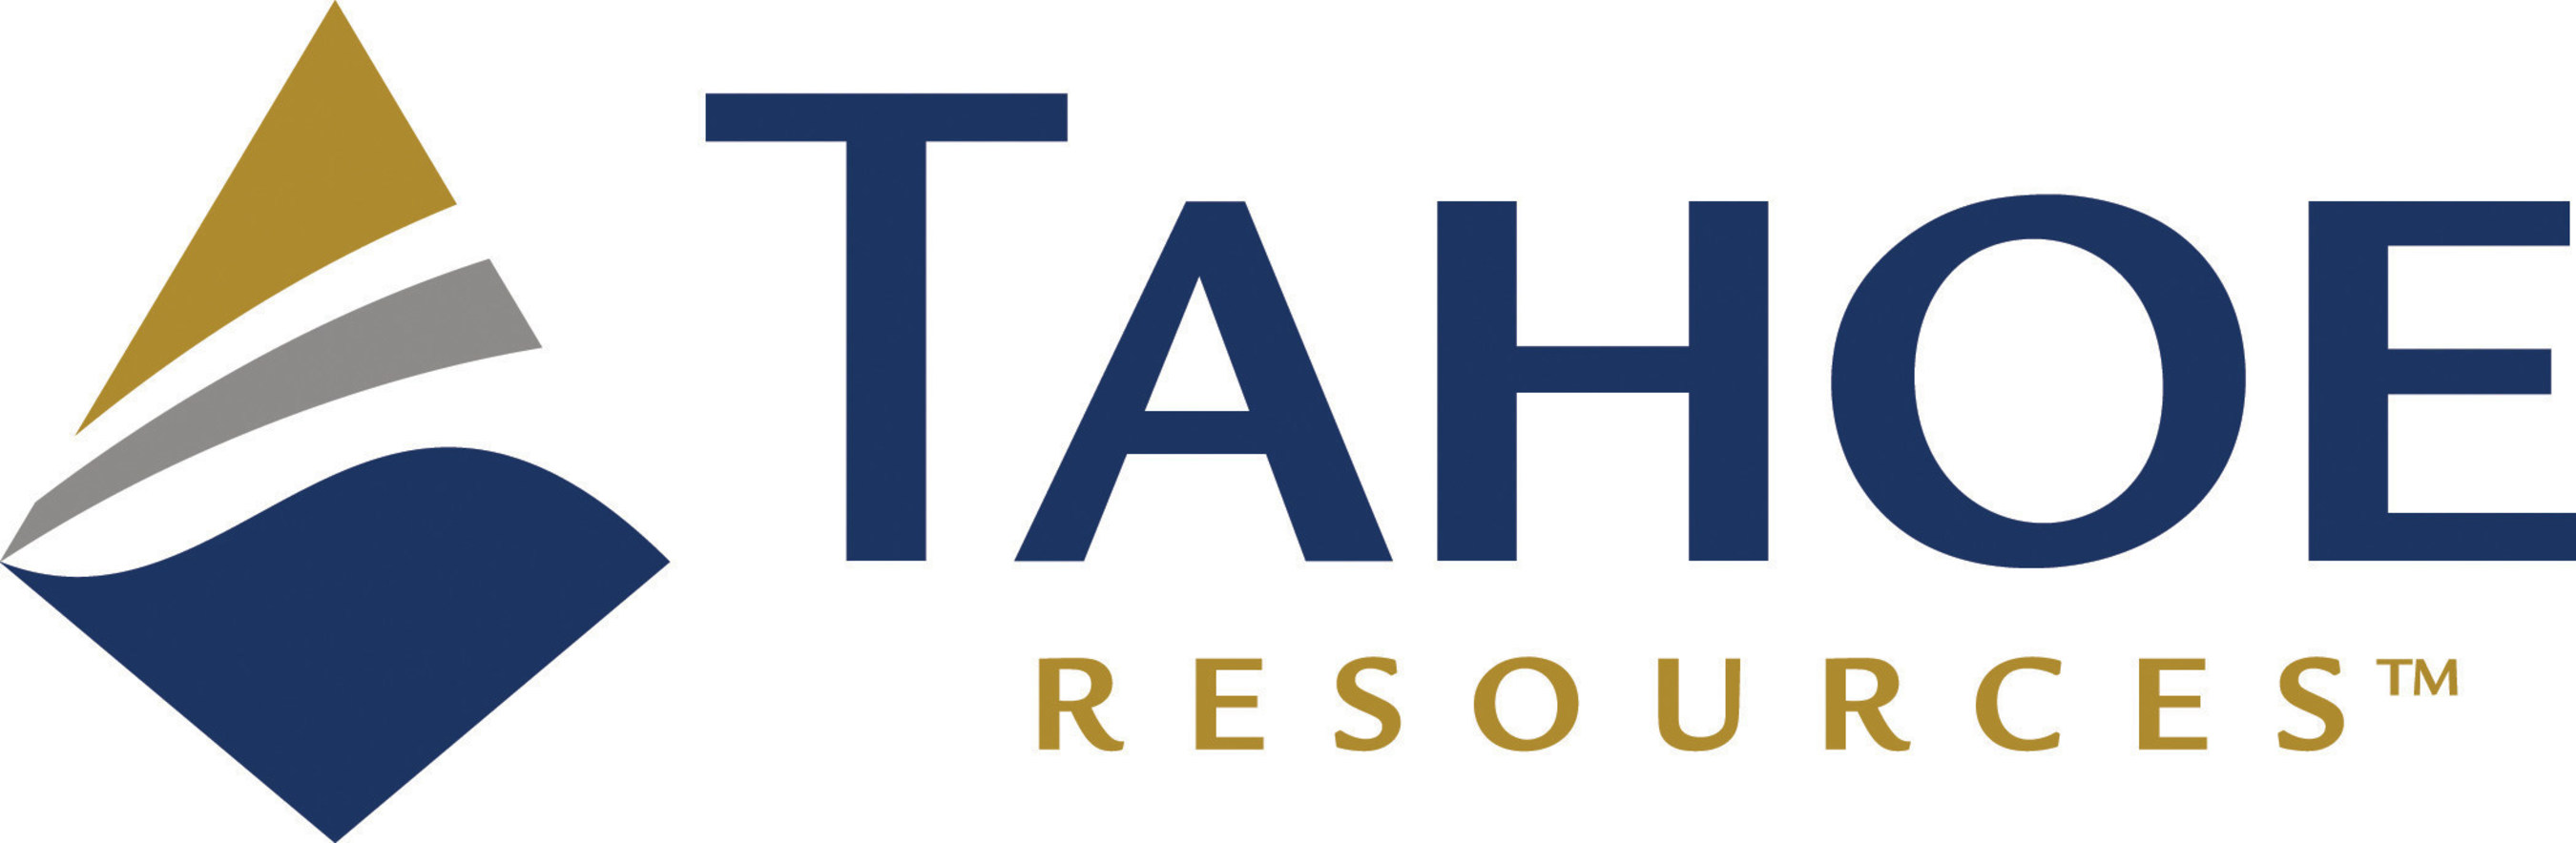 Tahoe Resources To Appeal Confinement Of Employee By A Lower Court In Guatemala